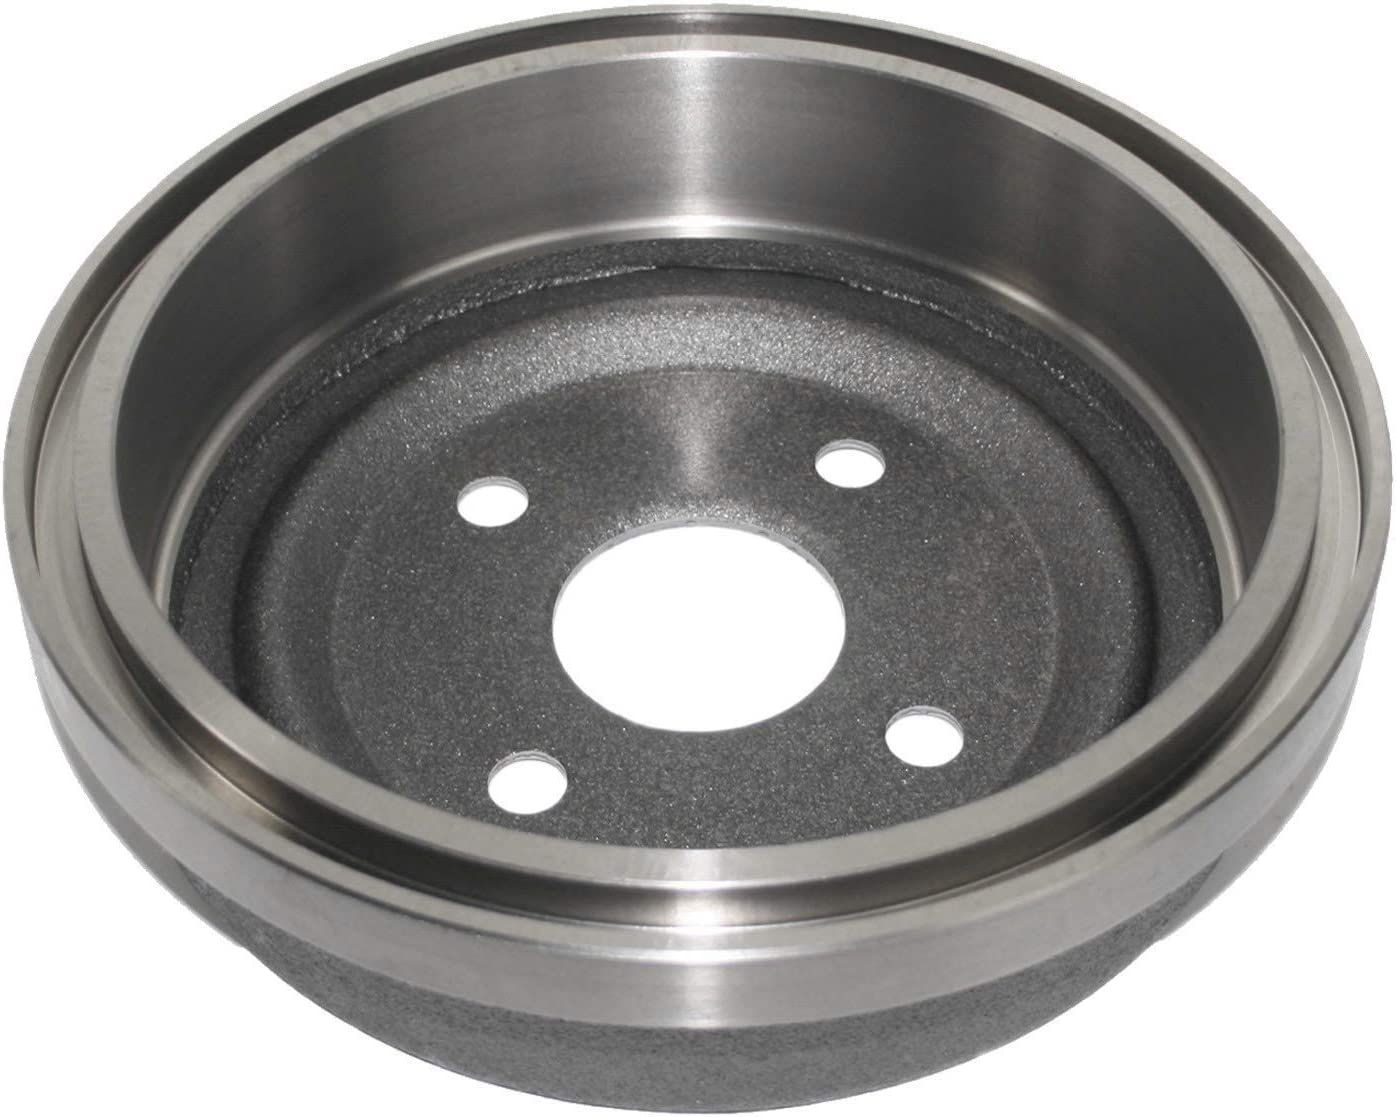 DuraGo BD8147 Front and Rear Brake Drum